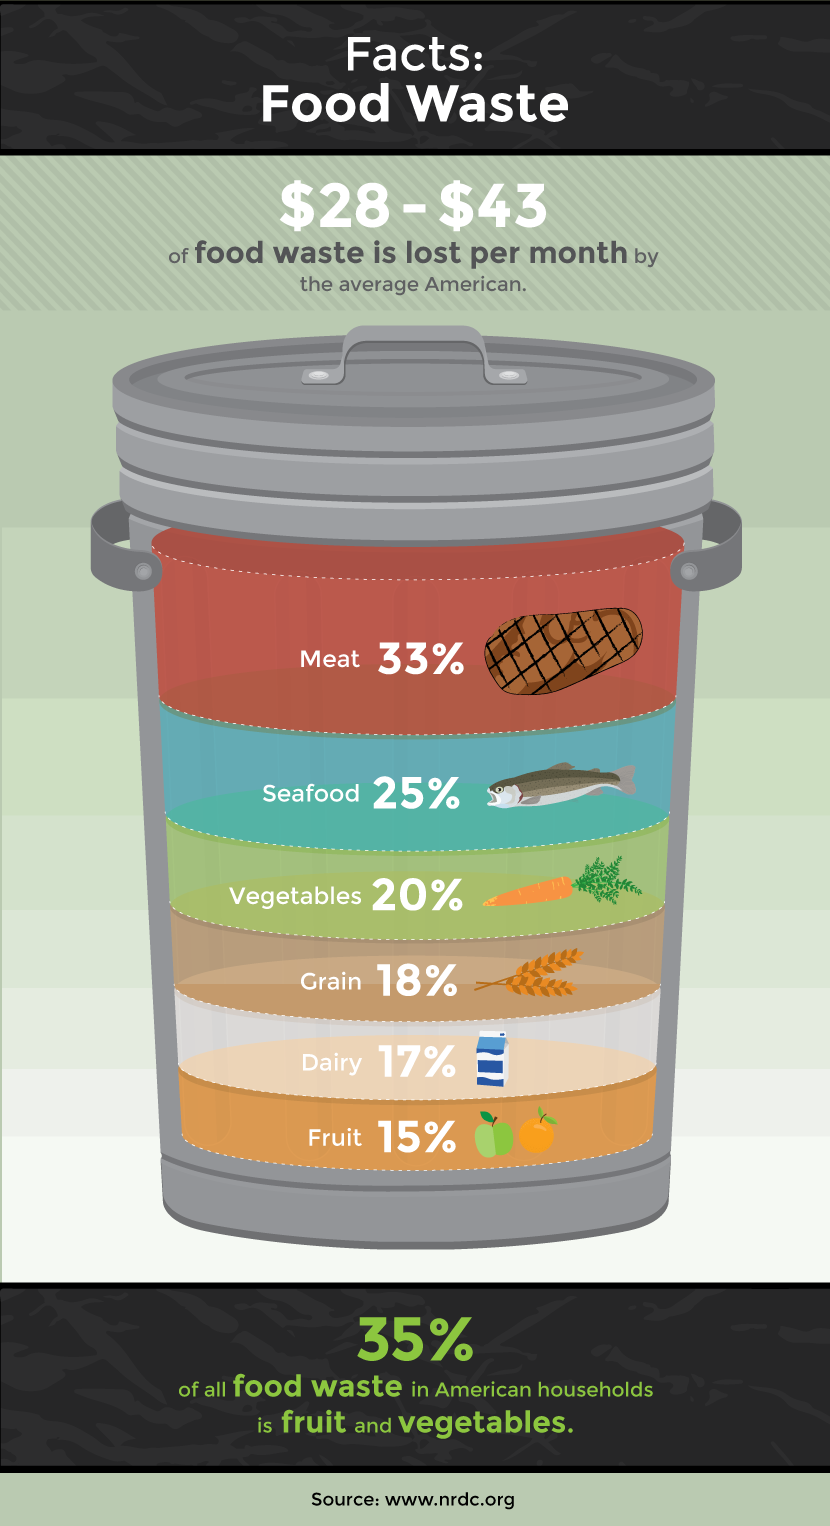 Facts on Food Waste